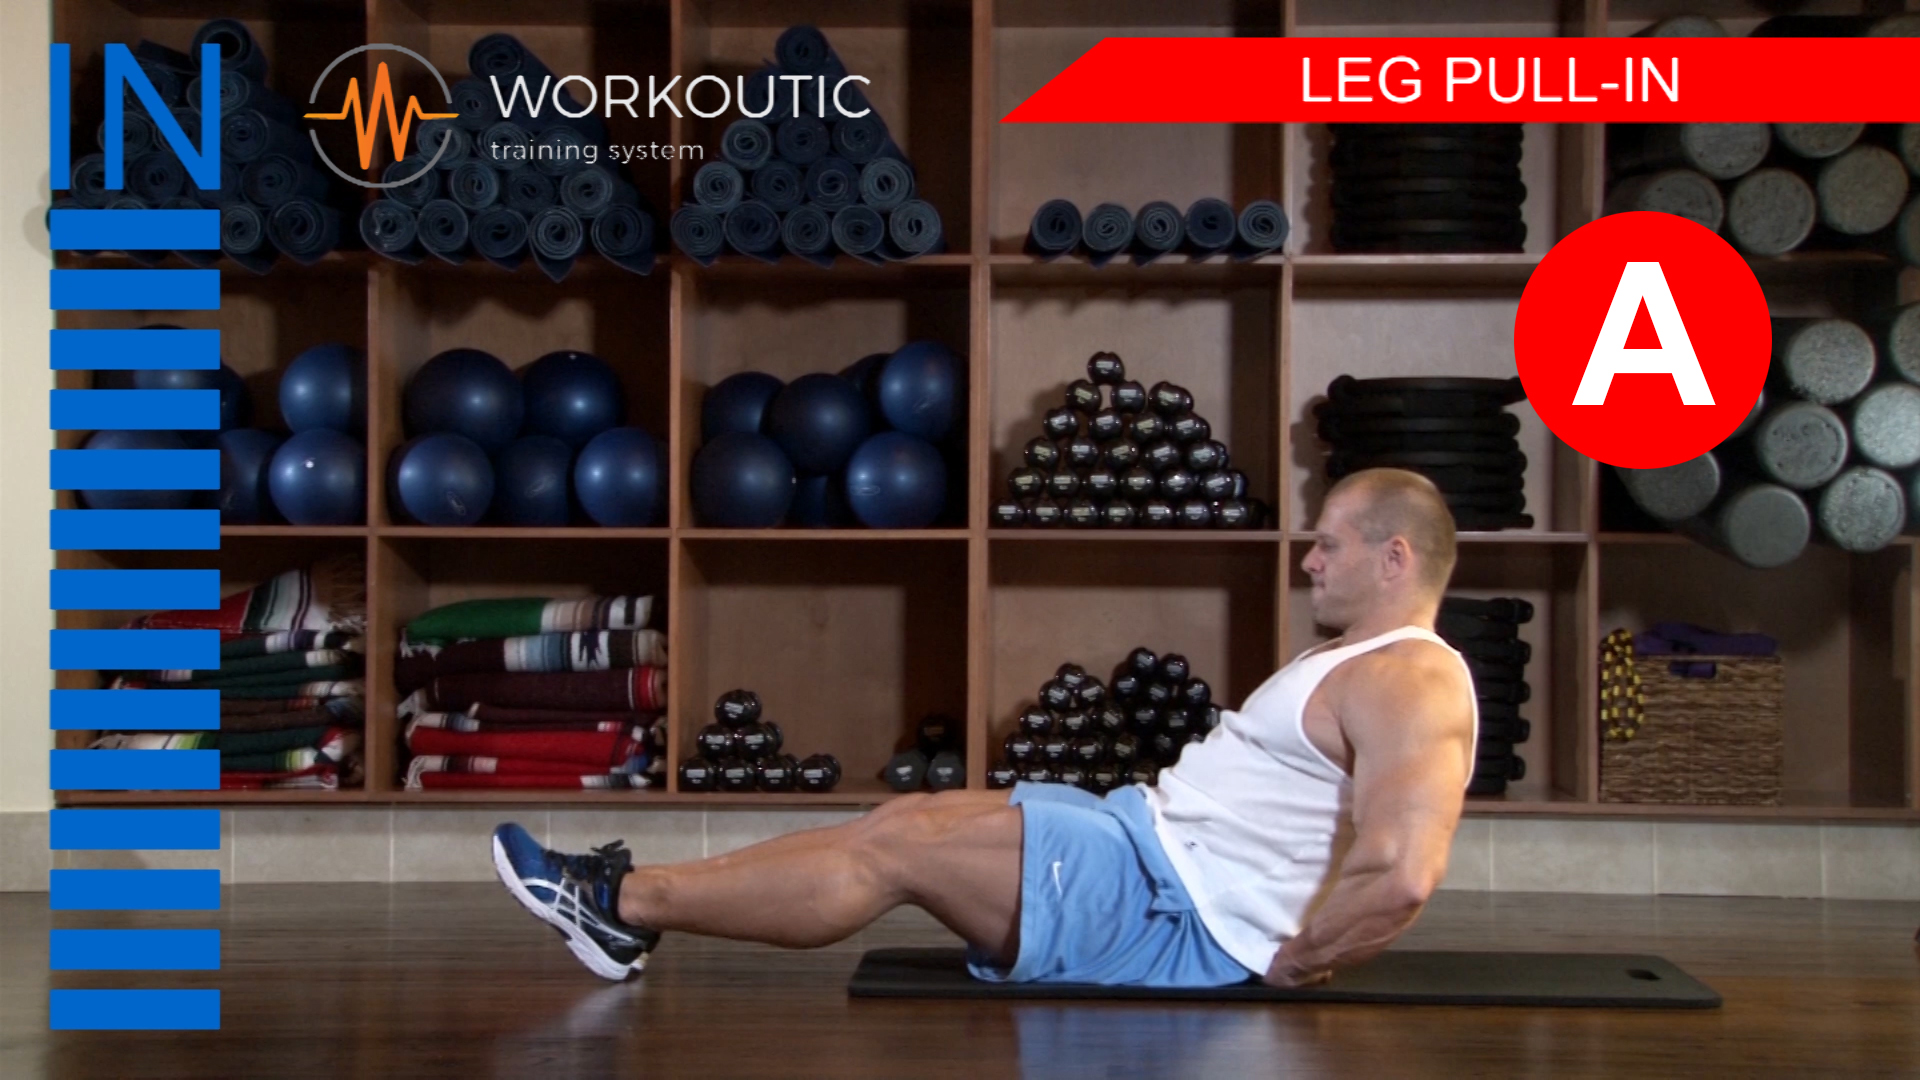 Abs Exercises - Workutic - 6 pack special - Leg Pull In Inhale